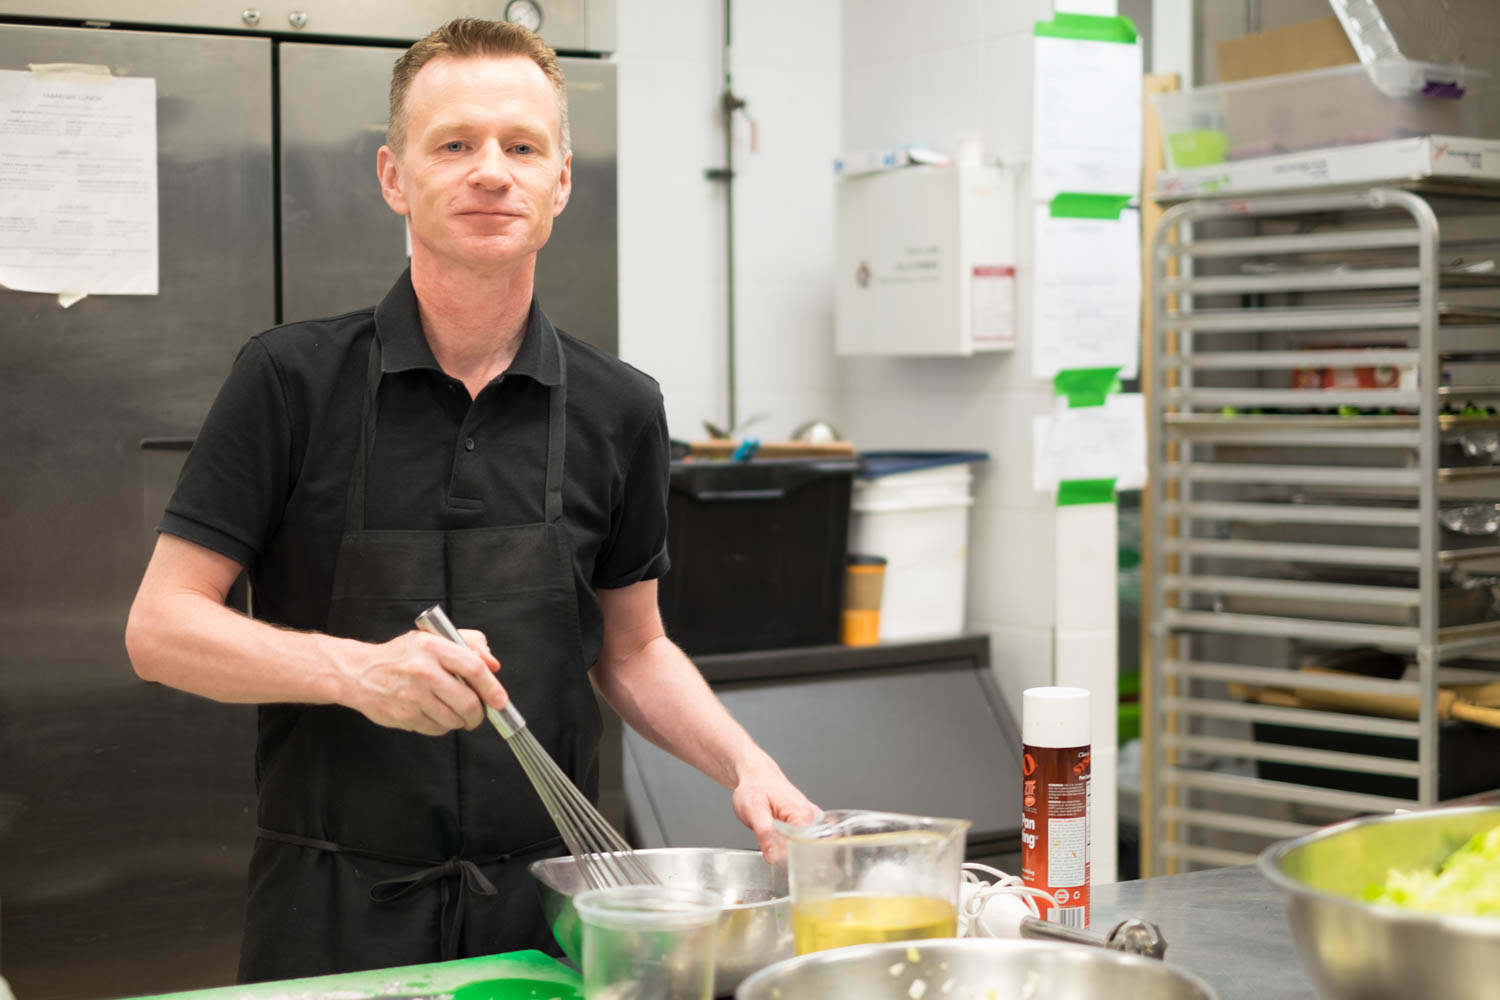 Stephen wearing a black shirt and apron whisking in a kitchen with kitchen equipment in the background. Stephen is looking at the camera and smiling.